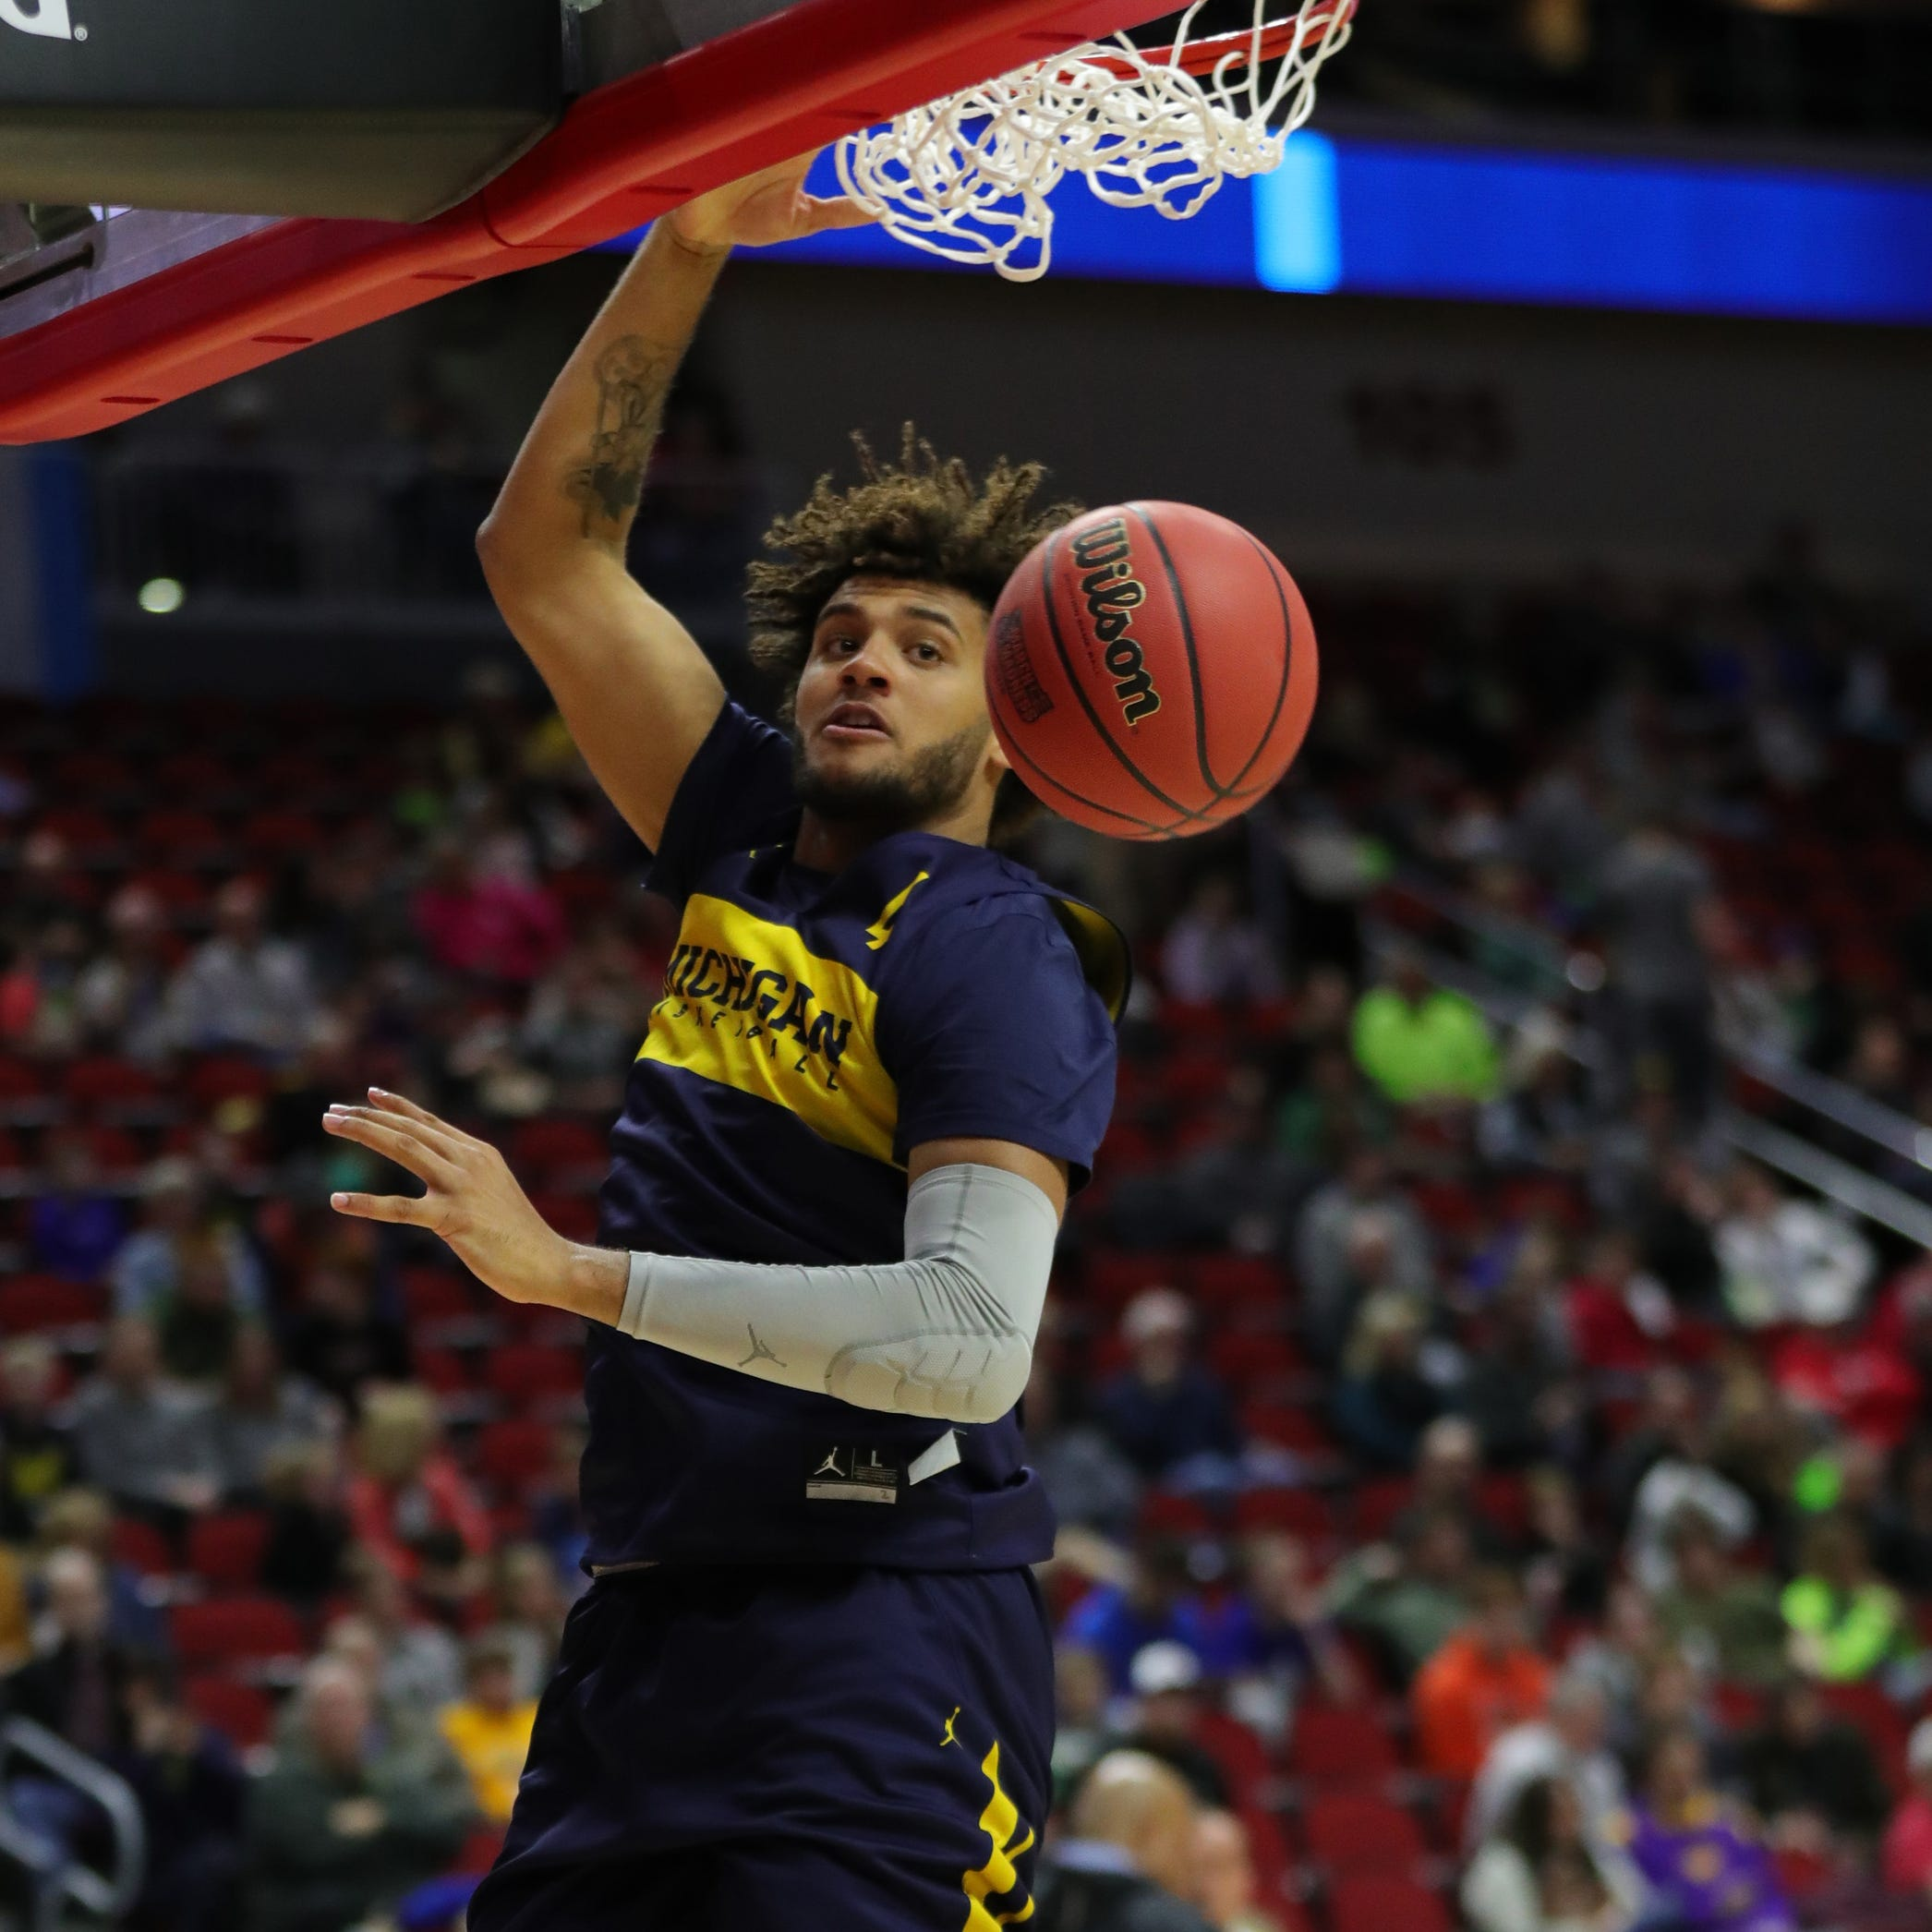 Michigan has the studs for NCAA tournament run. Time to believe